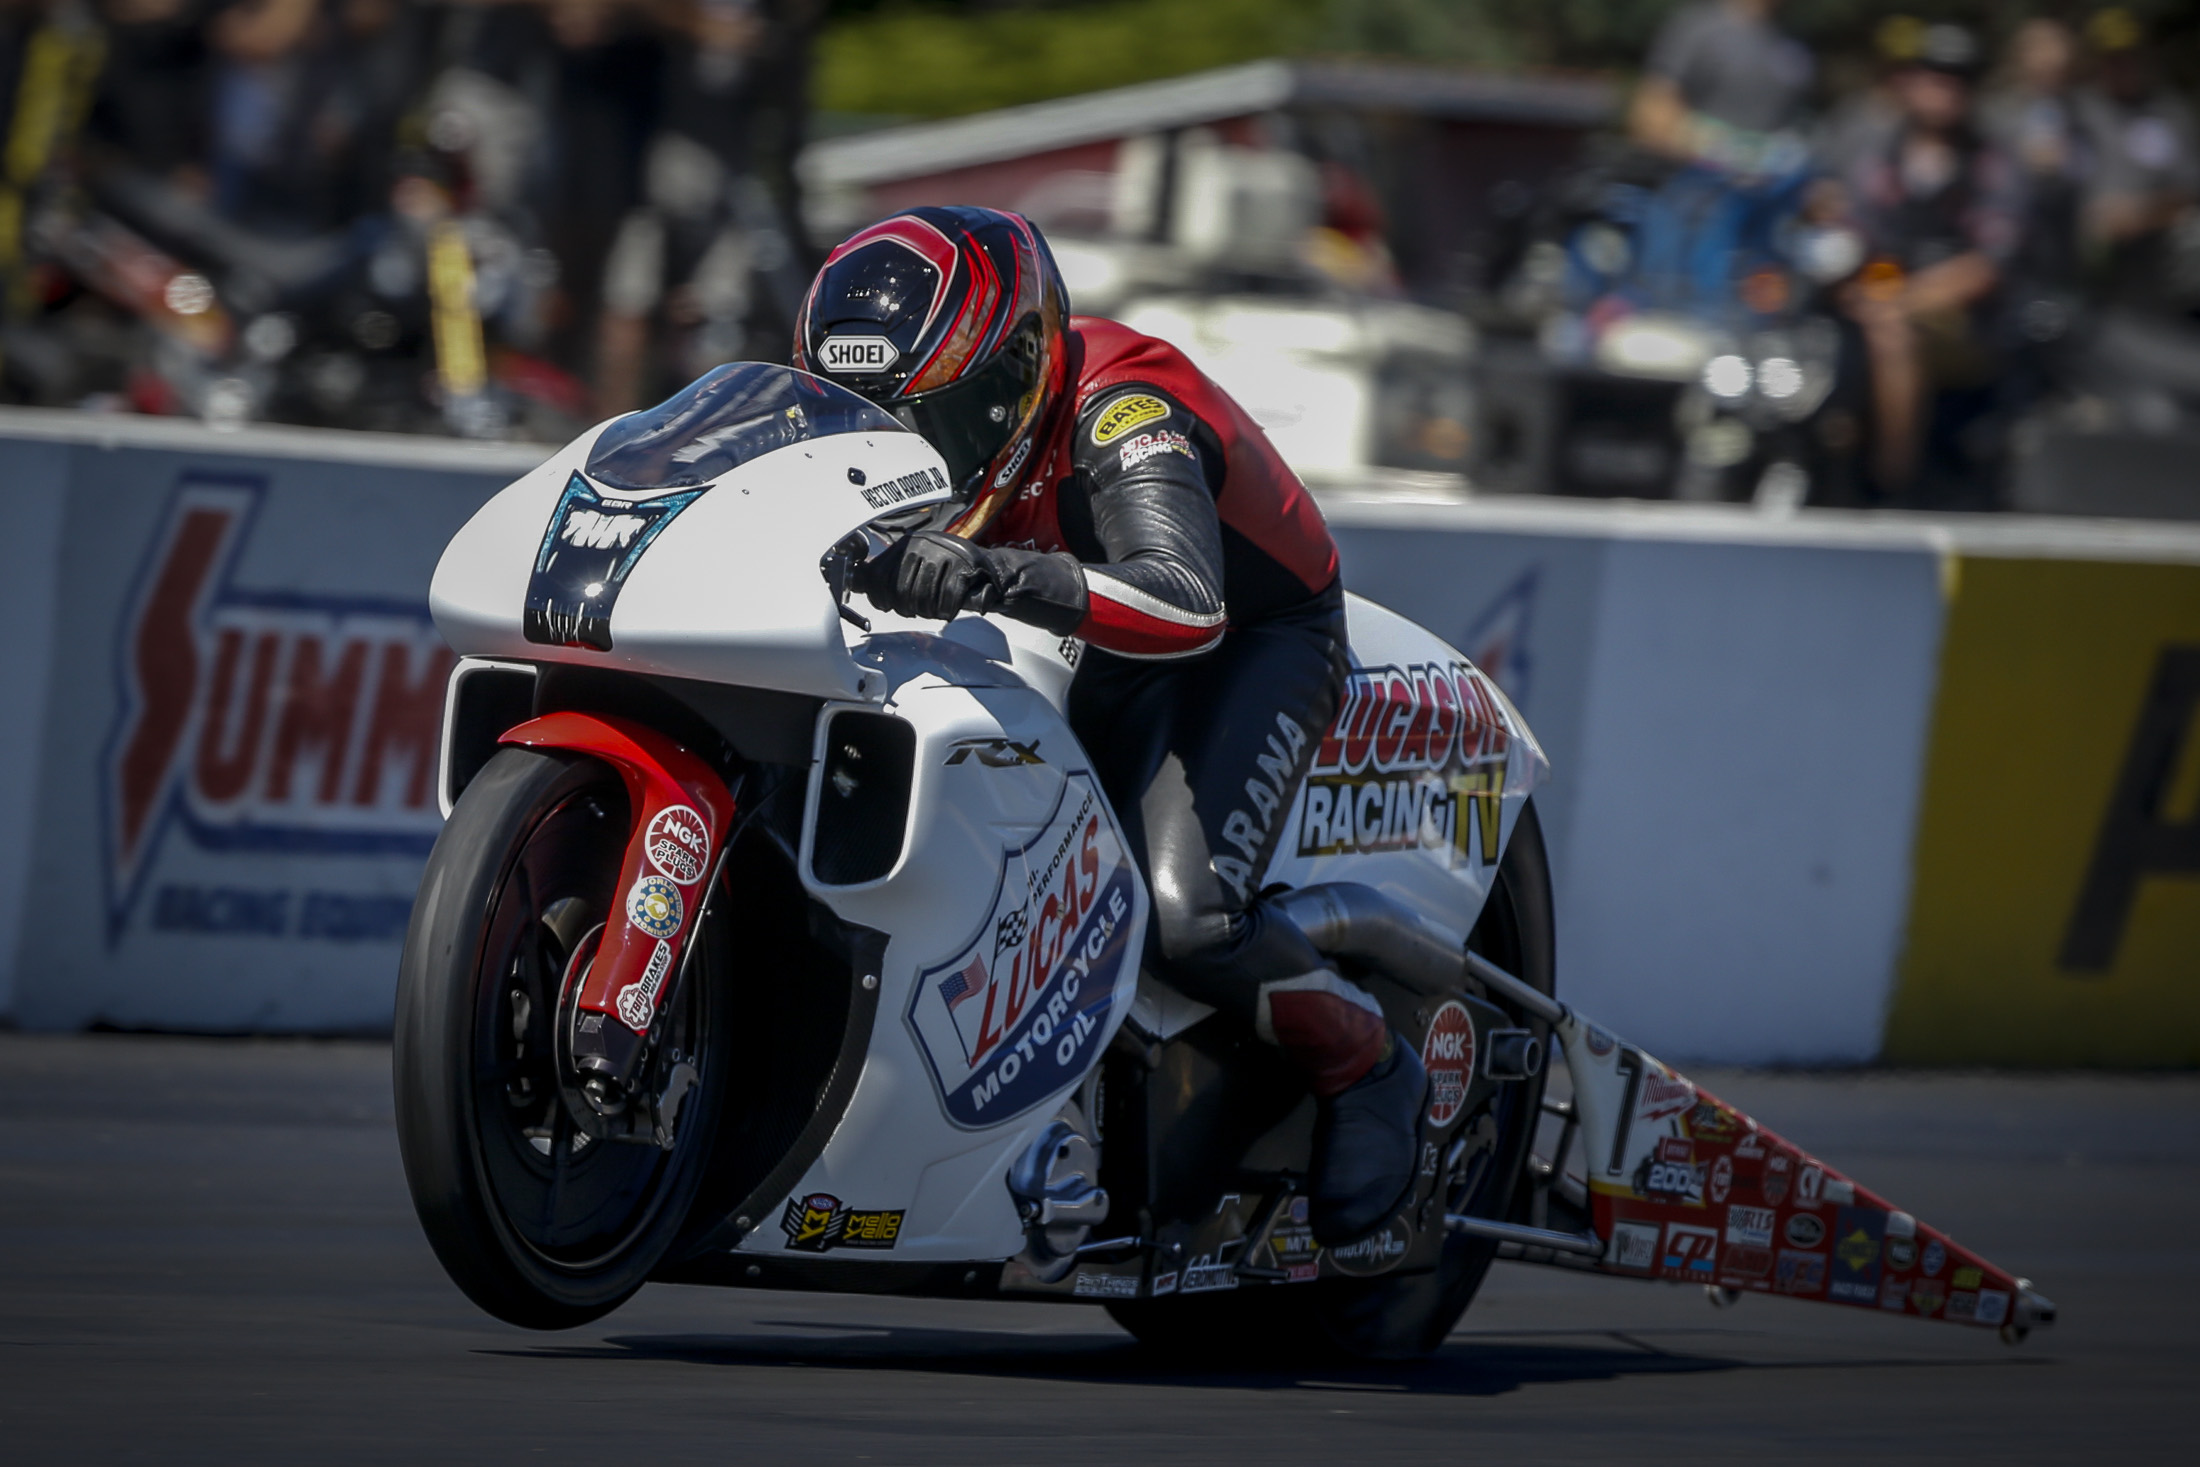 Lucas Oil Pro Stock Motorcycle rider Hector Arana Jr. racing on Sunday at the Dodge NHRA Nationals